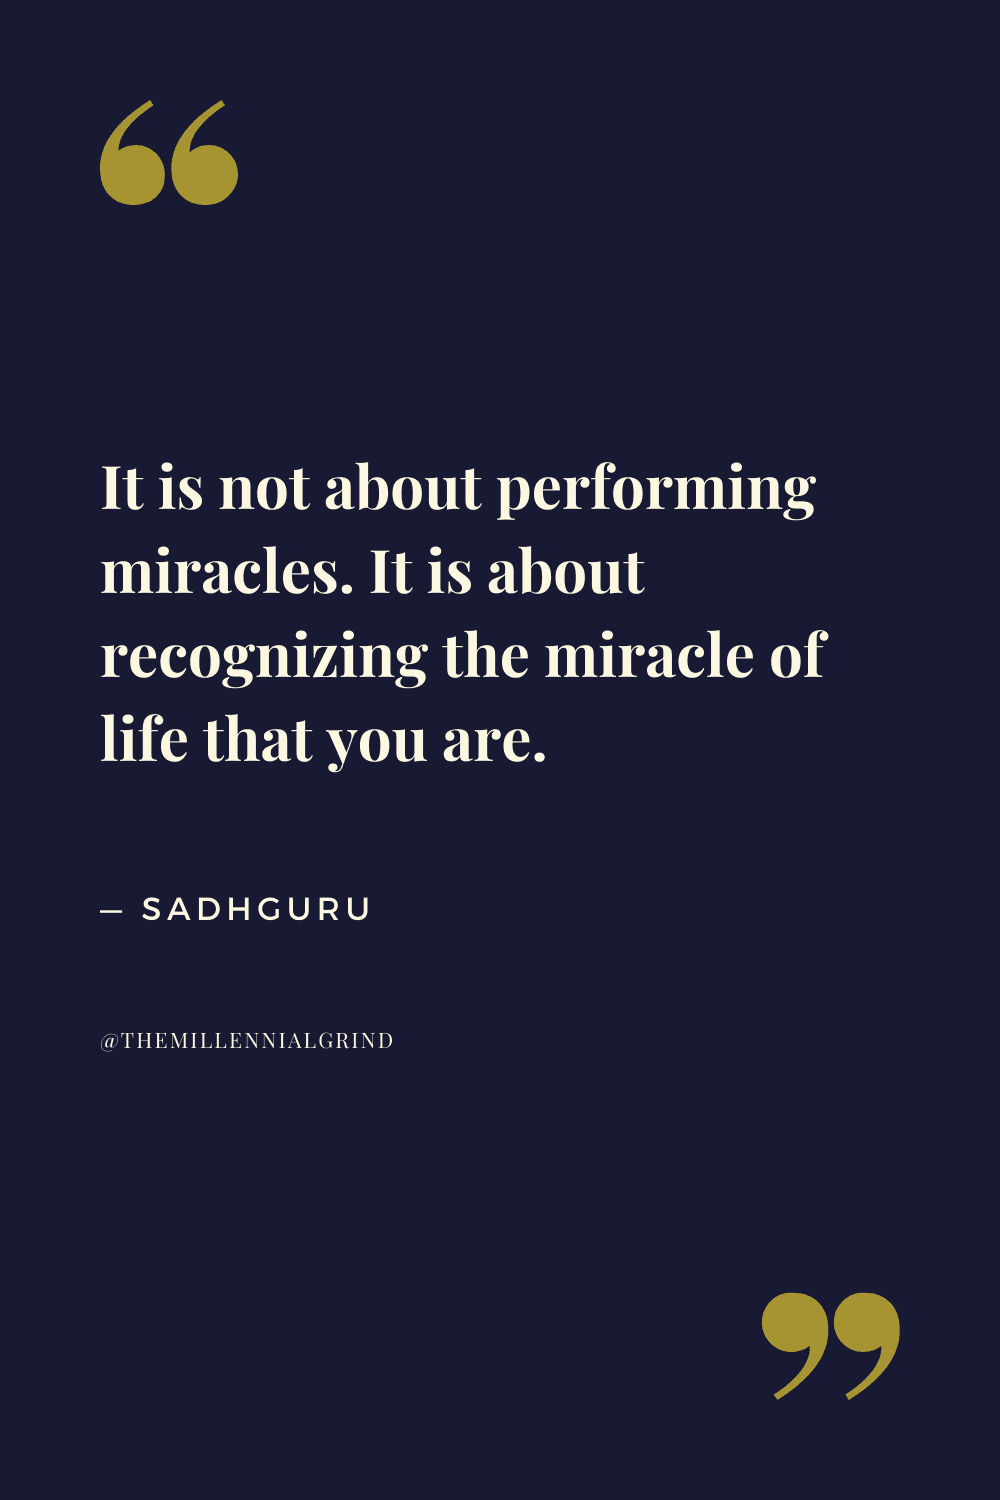 It is not about performing miracles. It is about recognizing the miracle of life that you are.